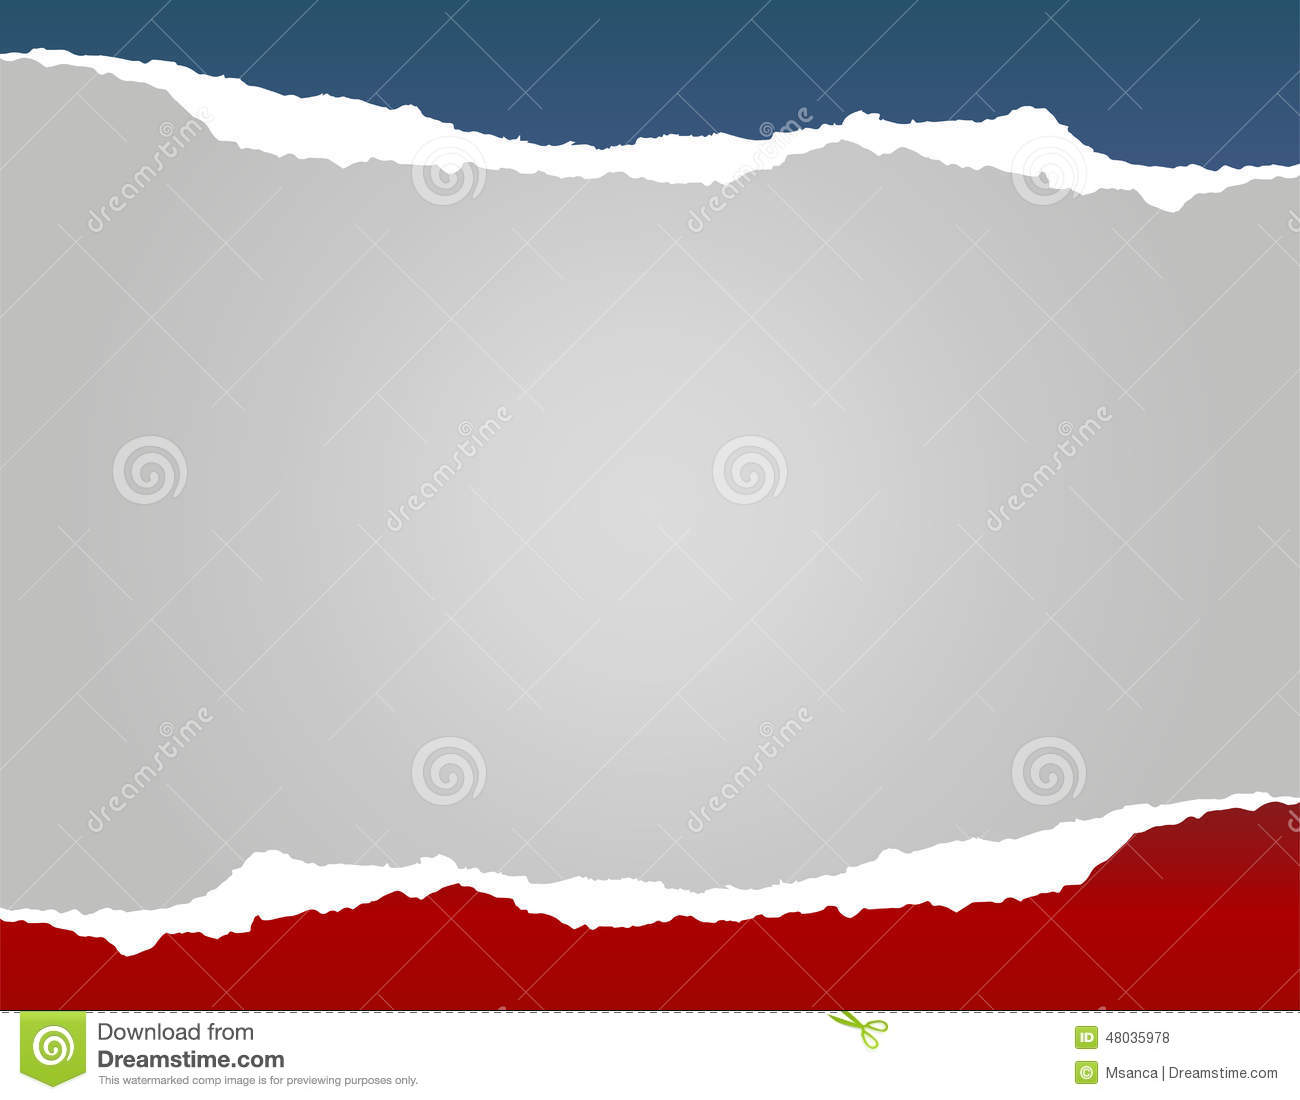 Abstract Dark Red Grey And Blue Vector Background Illustration 48035978 Megapixl